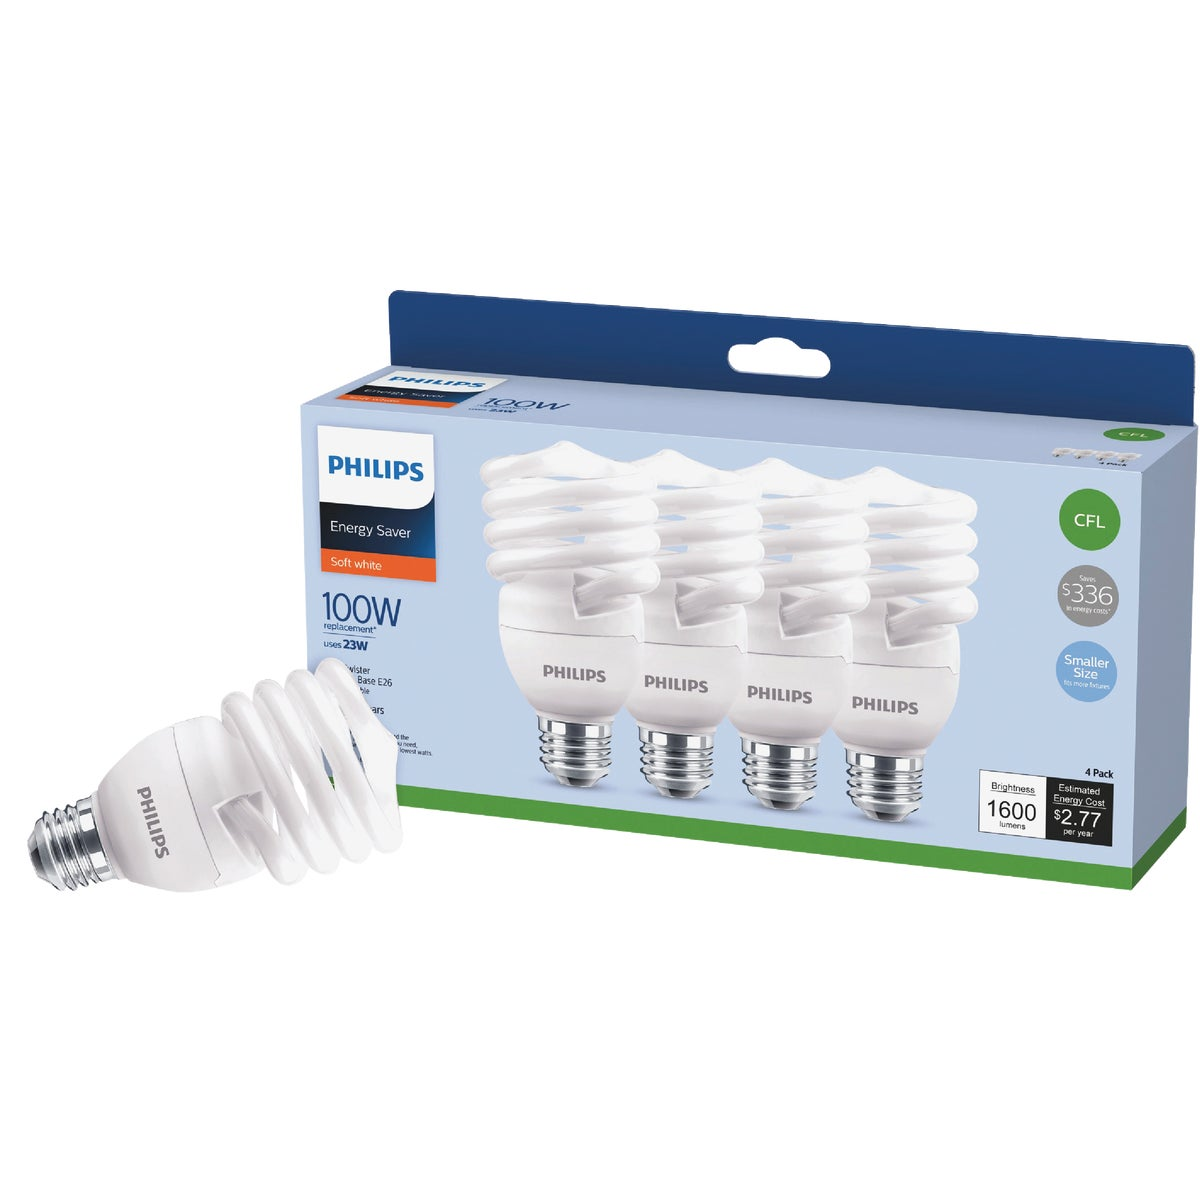 5PK 26W CFL BULB - 97250 FLE26HT3/2/5W-5PK by G E Lighting